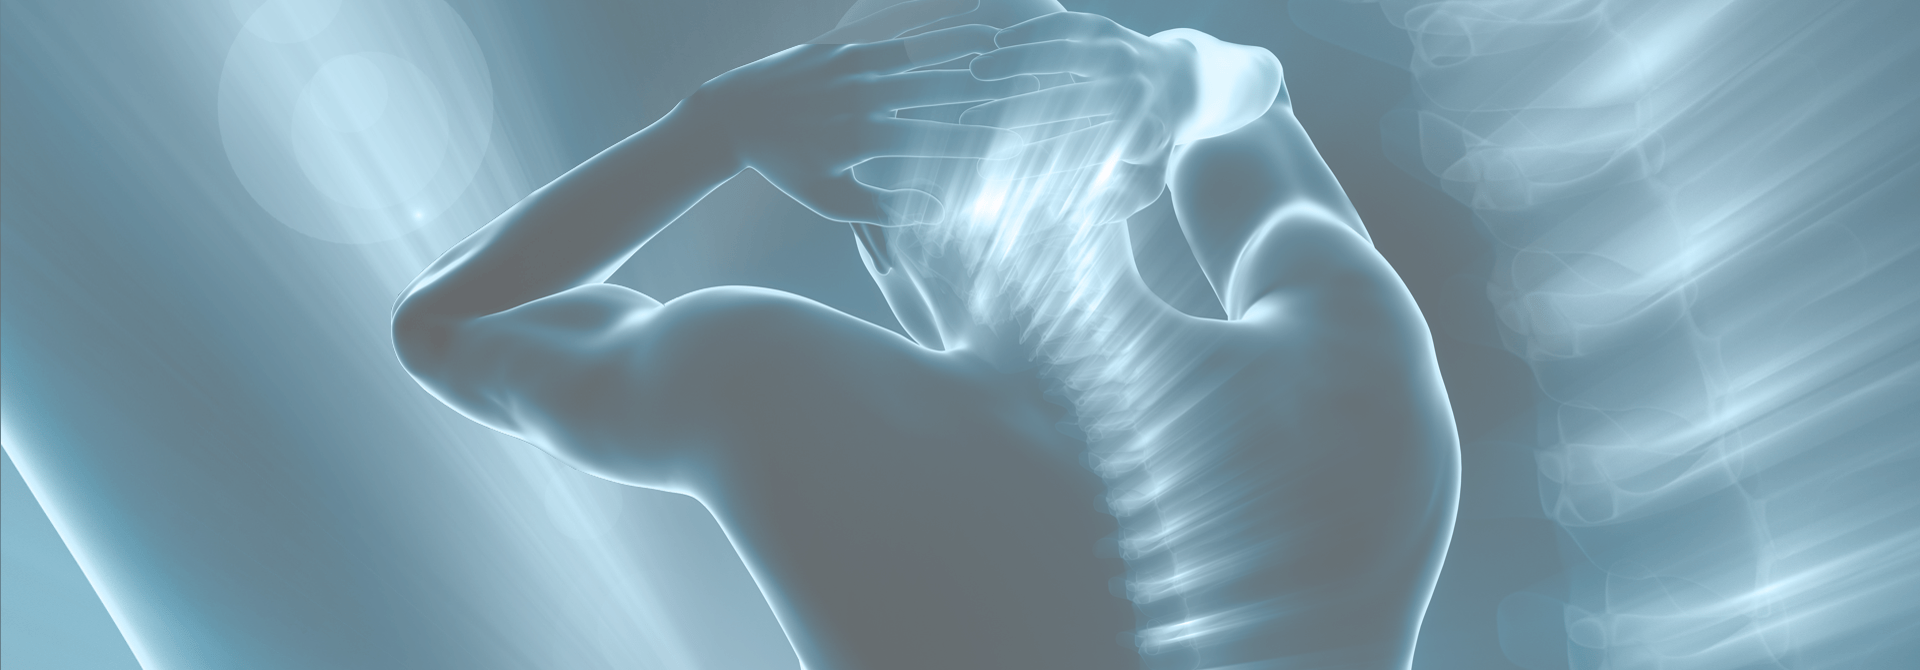 man silhouette with his hands on his head and his spine lit up in blue